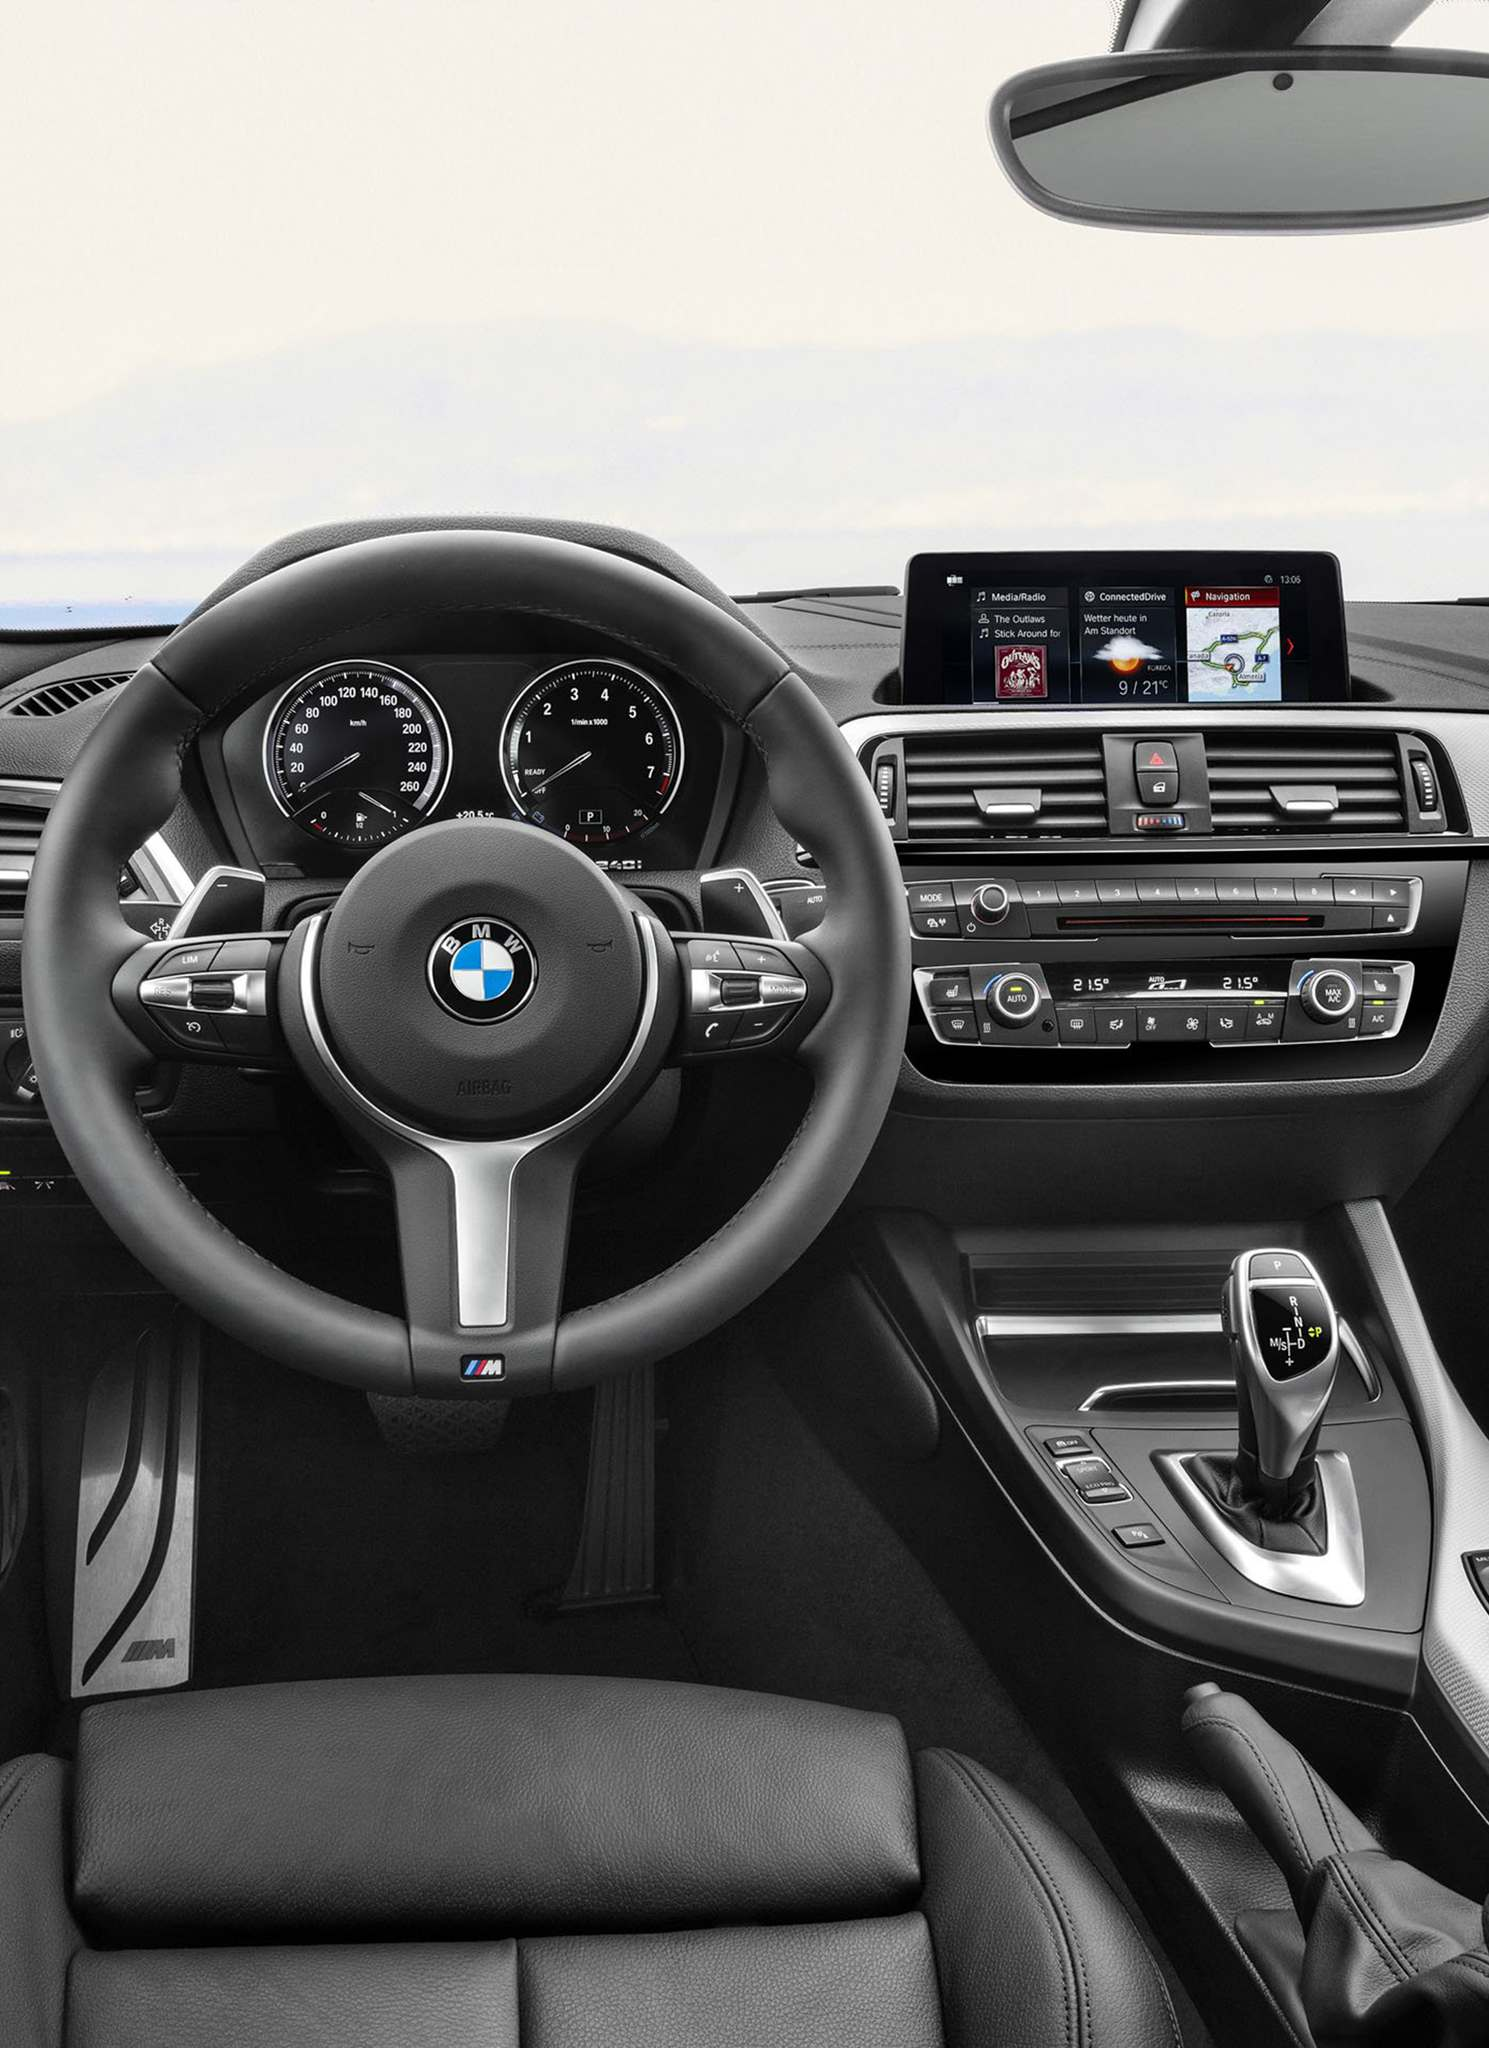 The driver assistance package includes adaptive headlights with automatic high beams, while performance exhaust, Harmon Kardon audio and sunset-orange metallic paint are stand-alone options. (BMW)